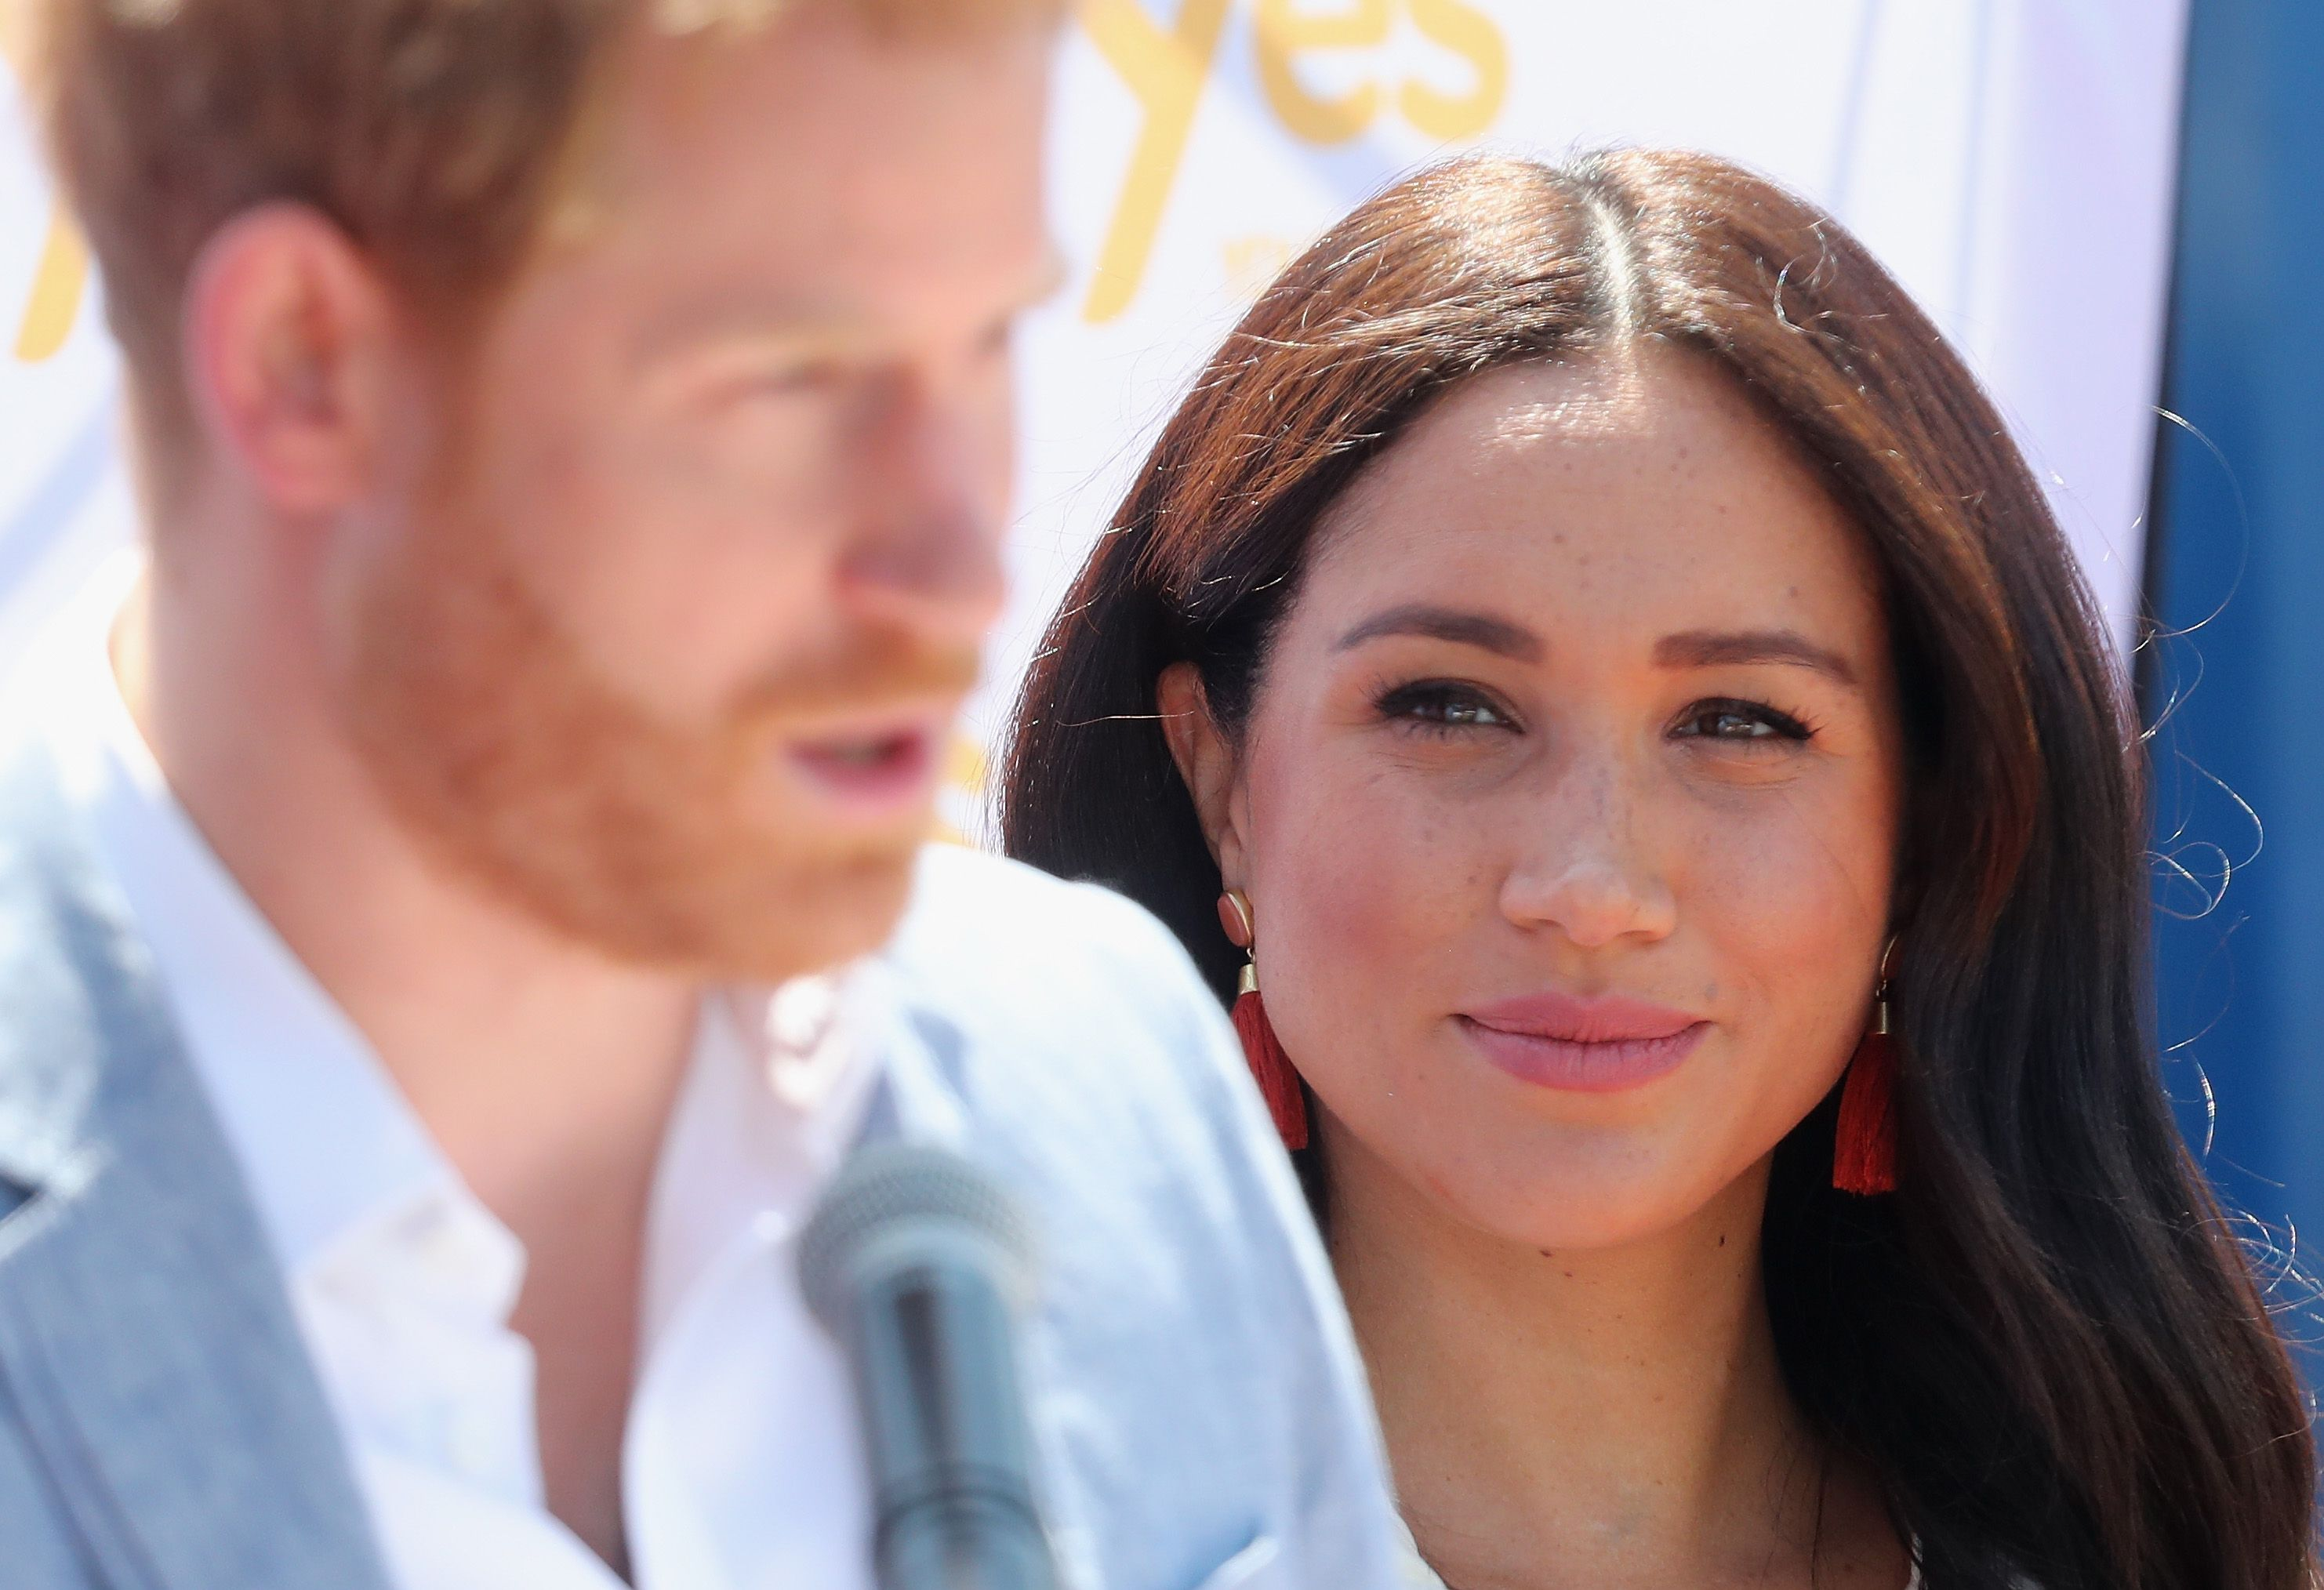 Meghan Markle Emotionally Admits She's Not Really Okay in New Interview